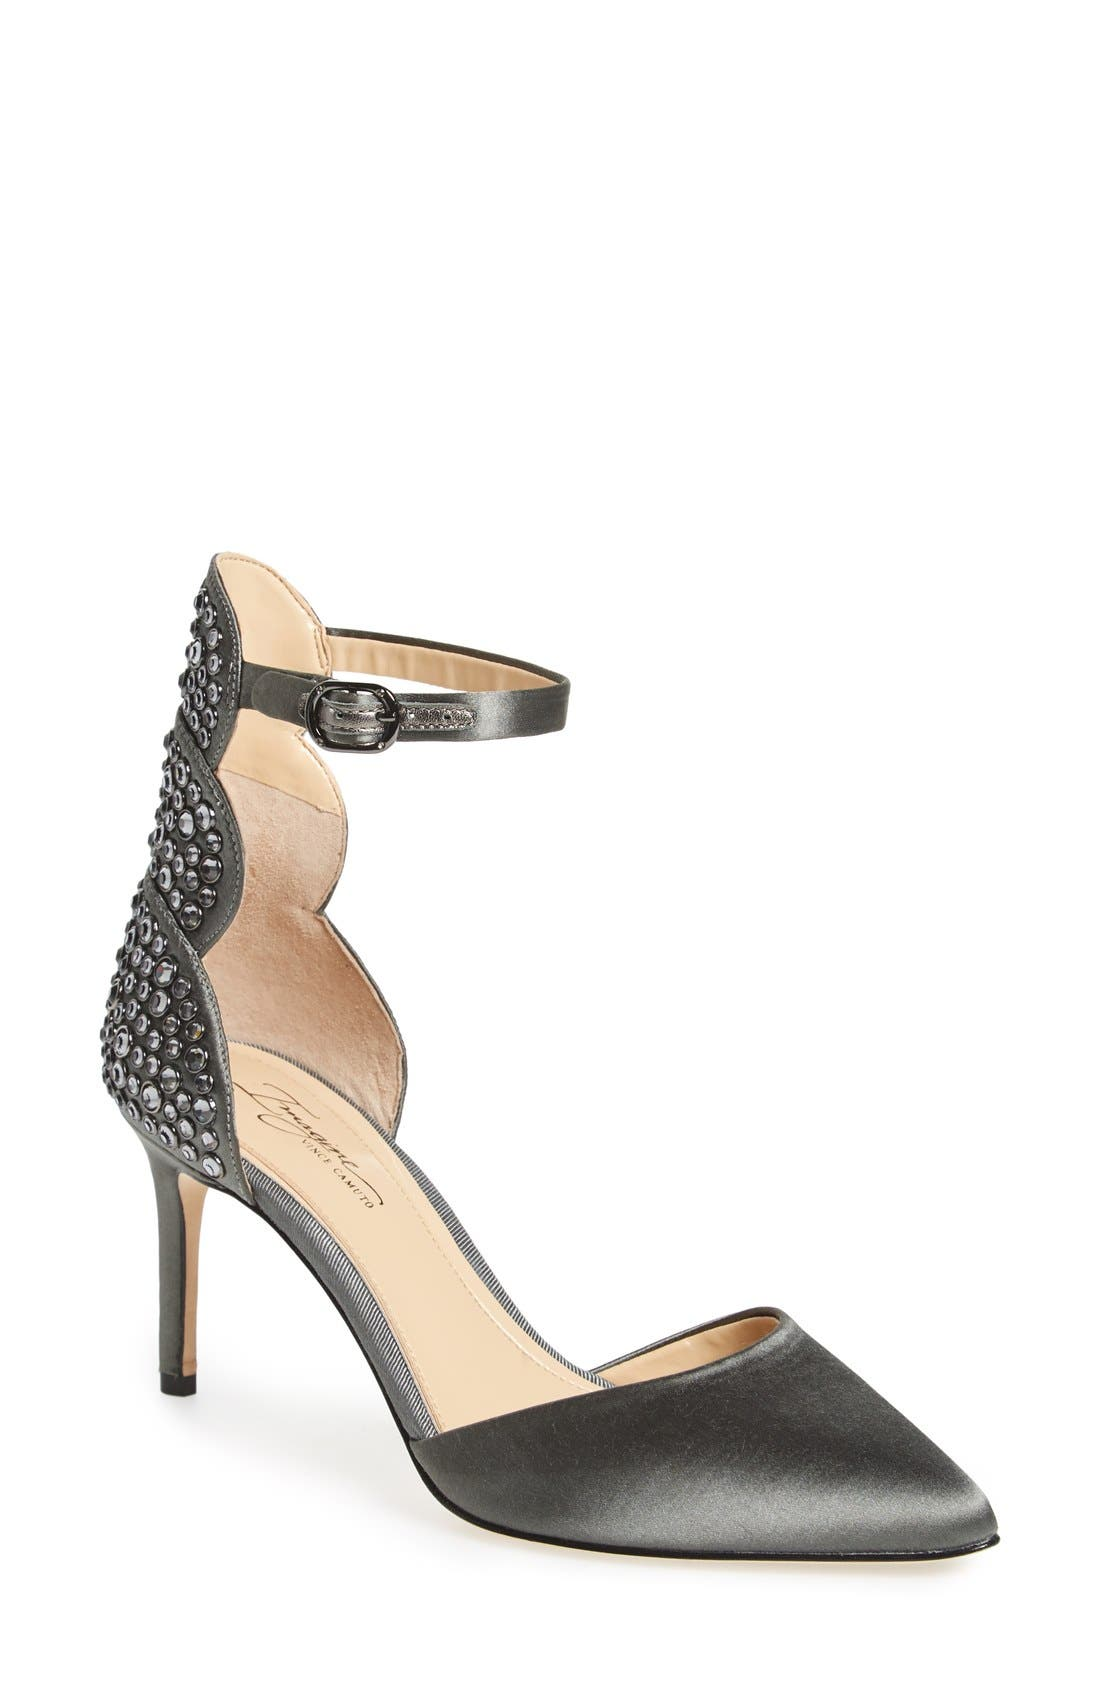 IMAGINE BY VINCE CAMUTO 'Mona' Pump